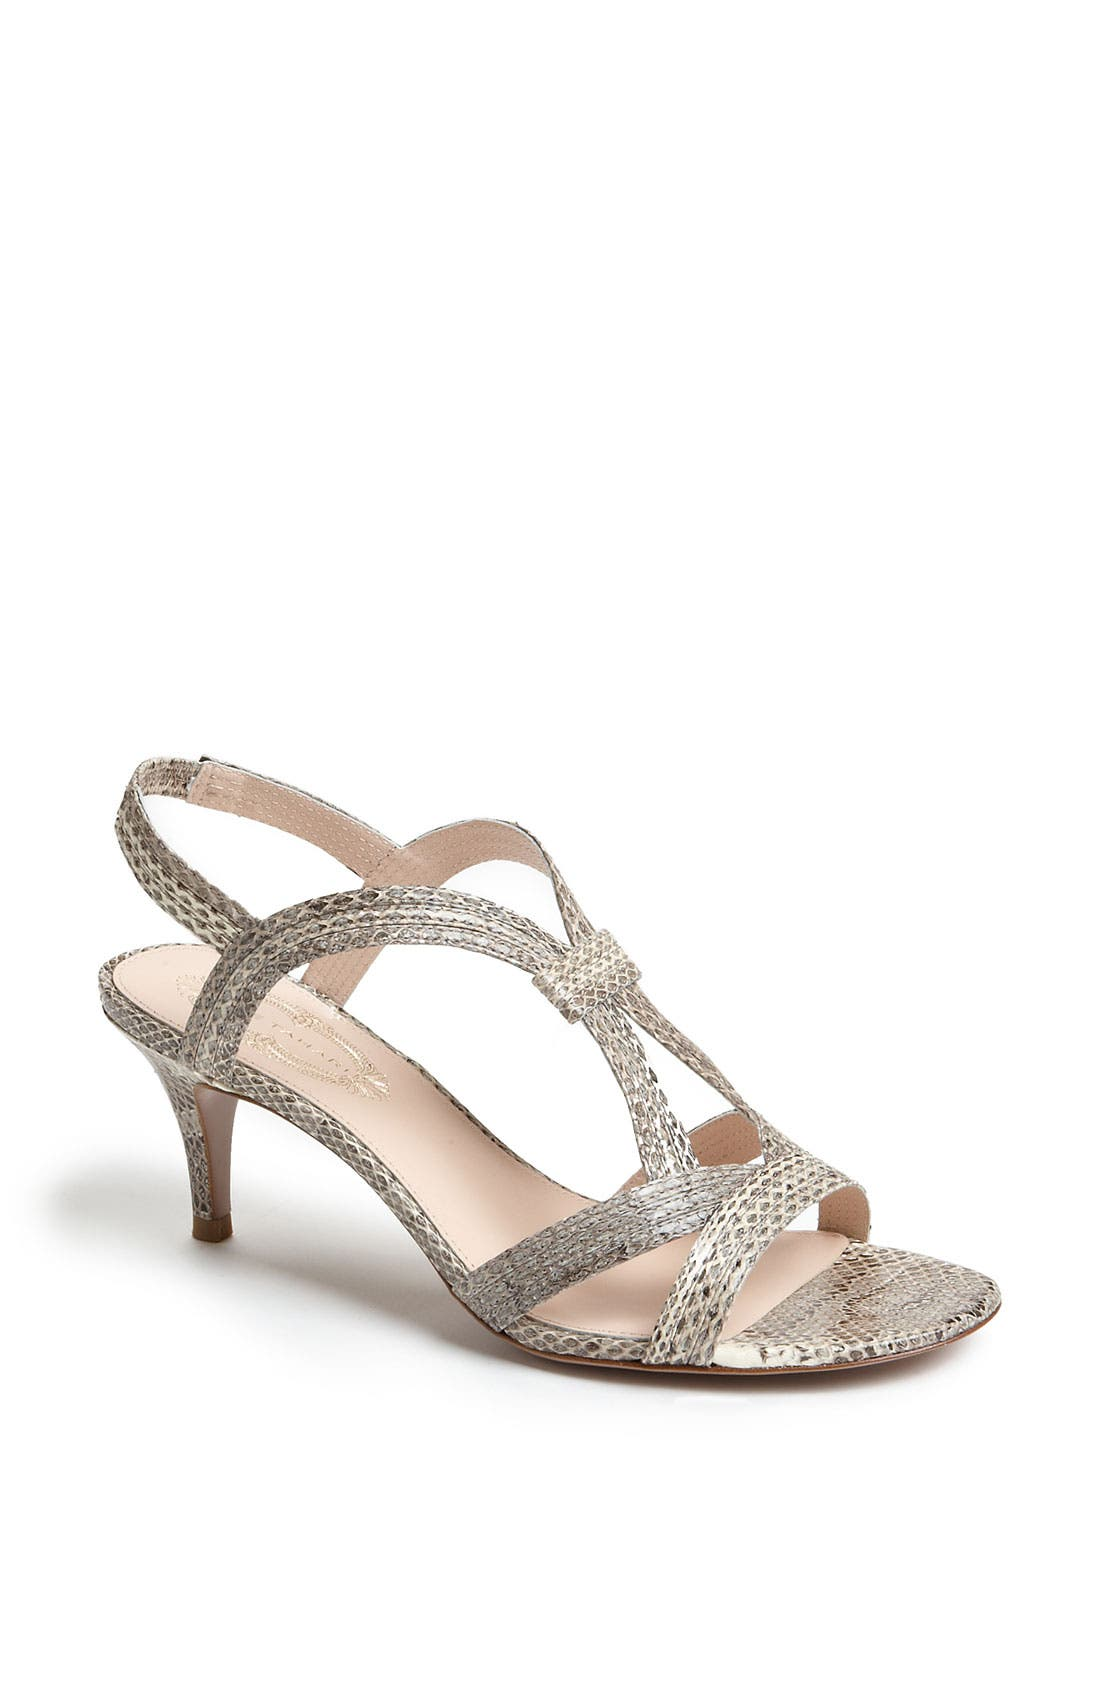 Alternate Image 1 Selected - Elie Tahari 'Zoe' Sandal